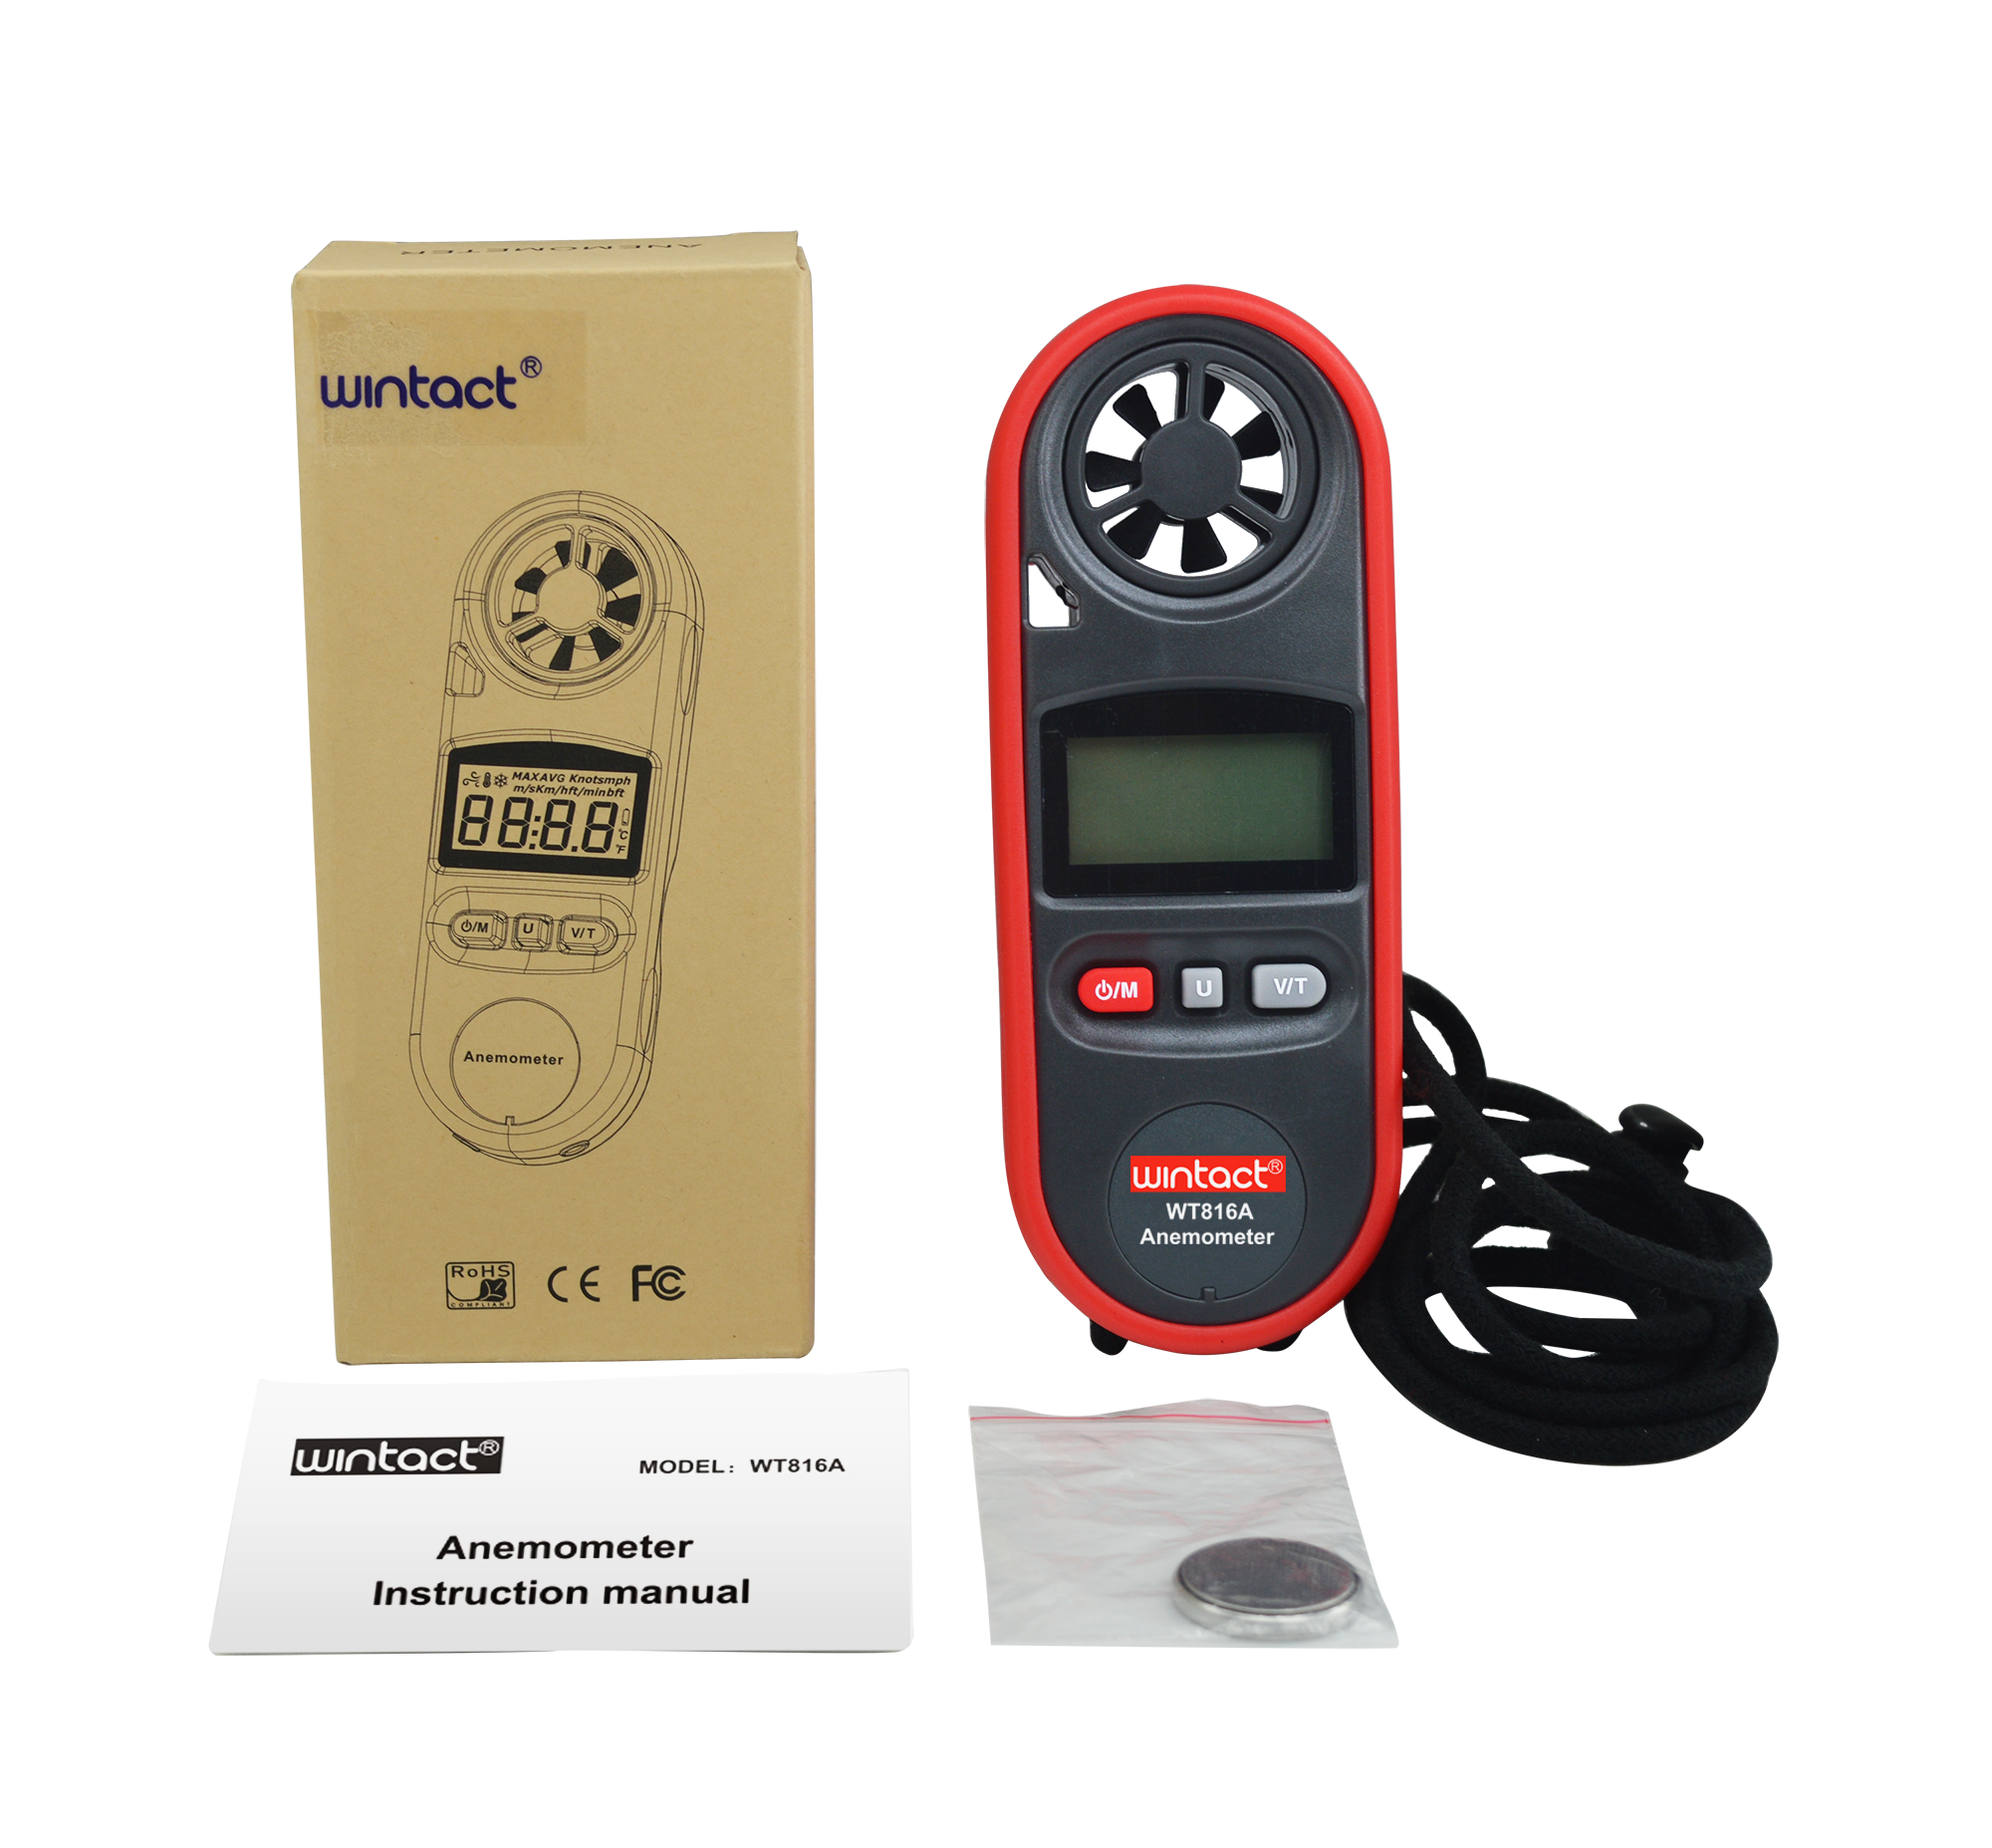 Portable RZ GM816 Wind Speed Meter Used as Anemometer with LCD Display Useful for Windsurfing 24